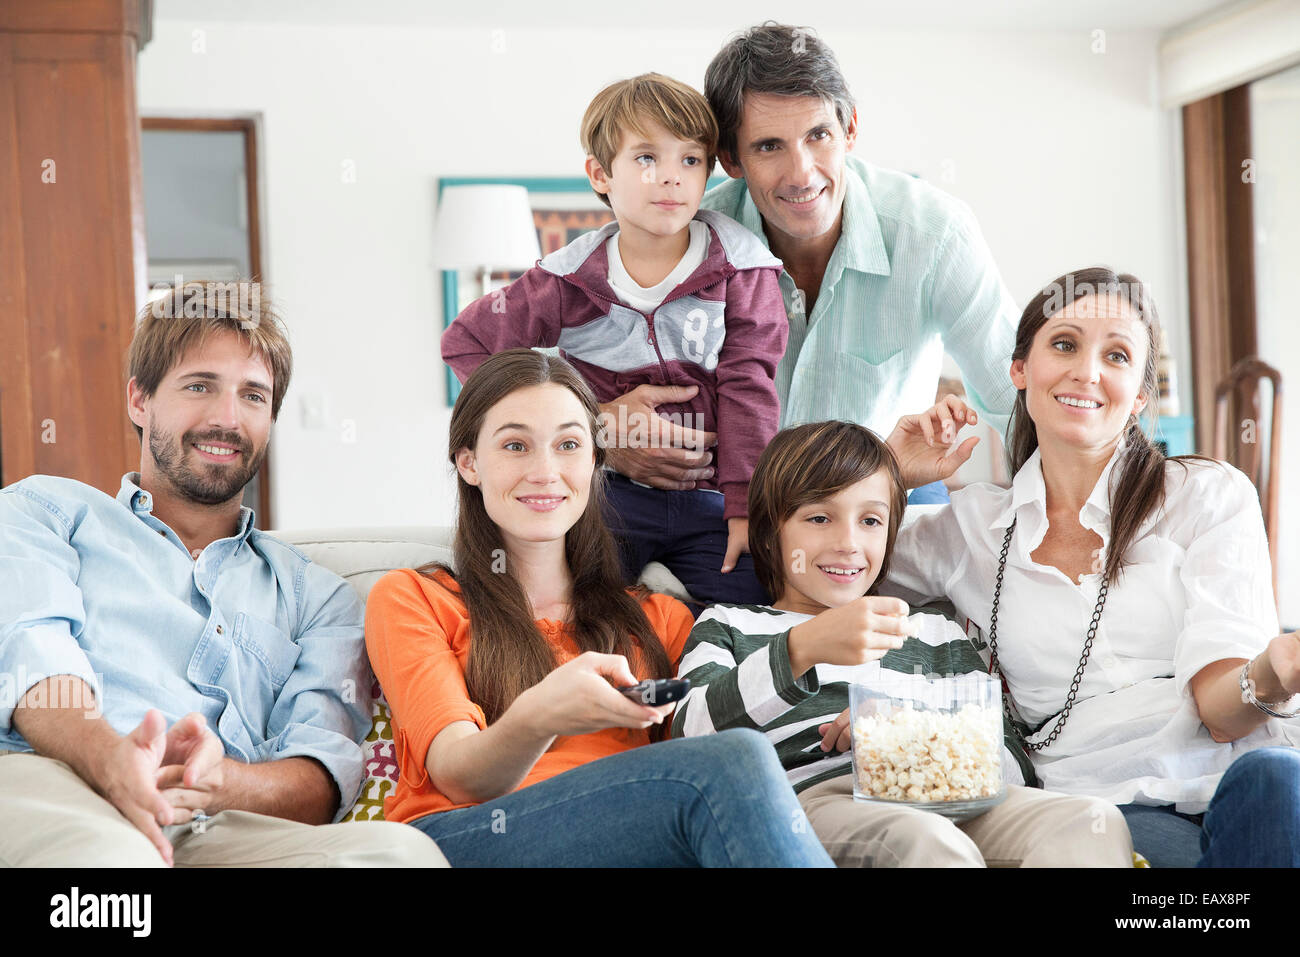 Family watching TV together - Stock Image